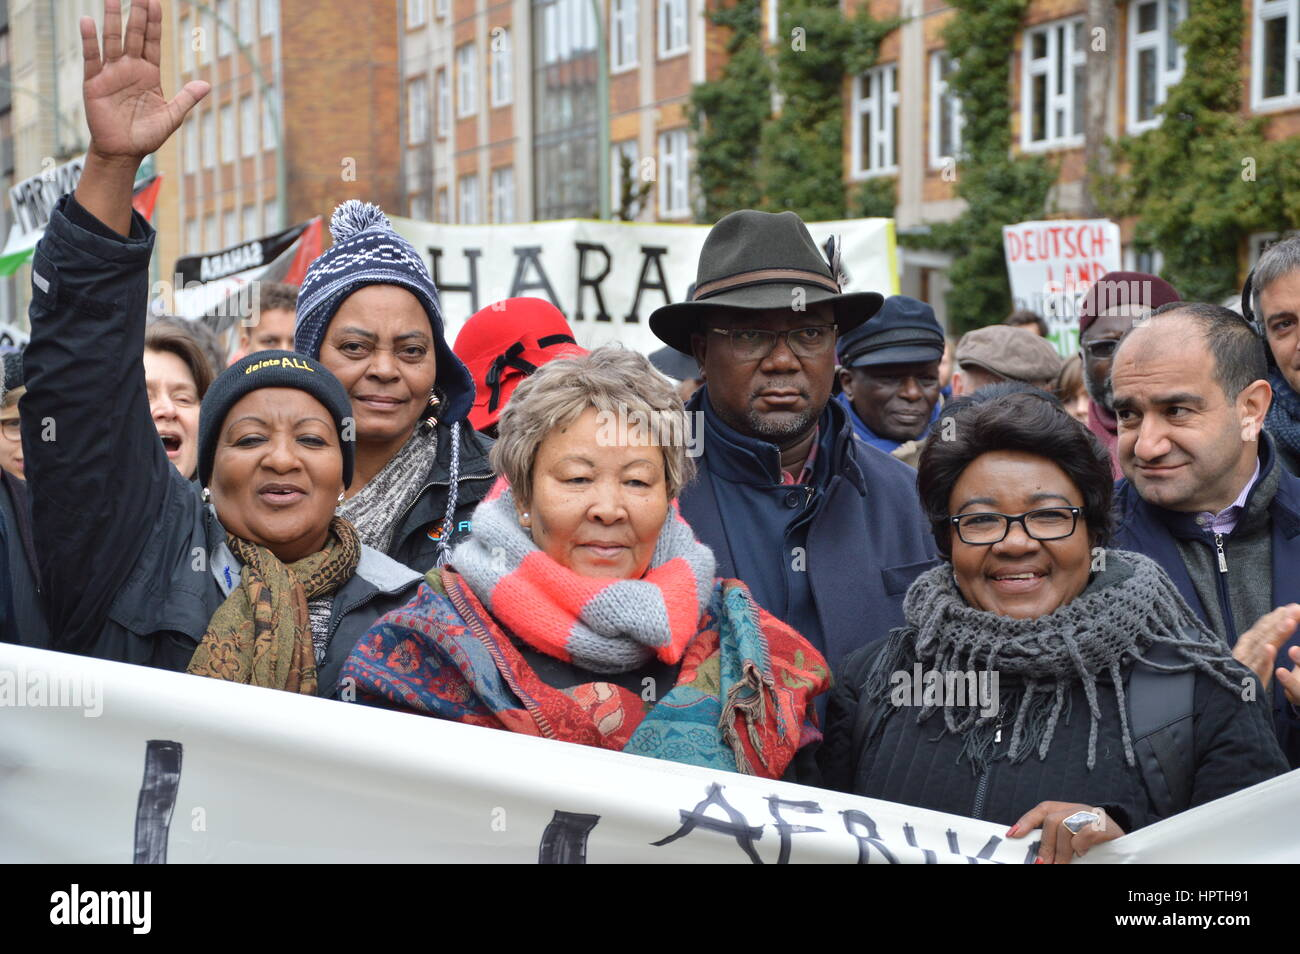 Berlin, Germany 25th Feb, 2017 The Memorial March for the African Victims of Colonialism in Berlin, Germany. Credit: - Stock Image